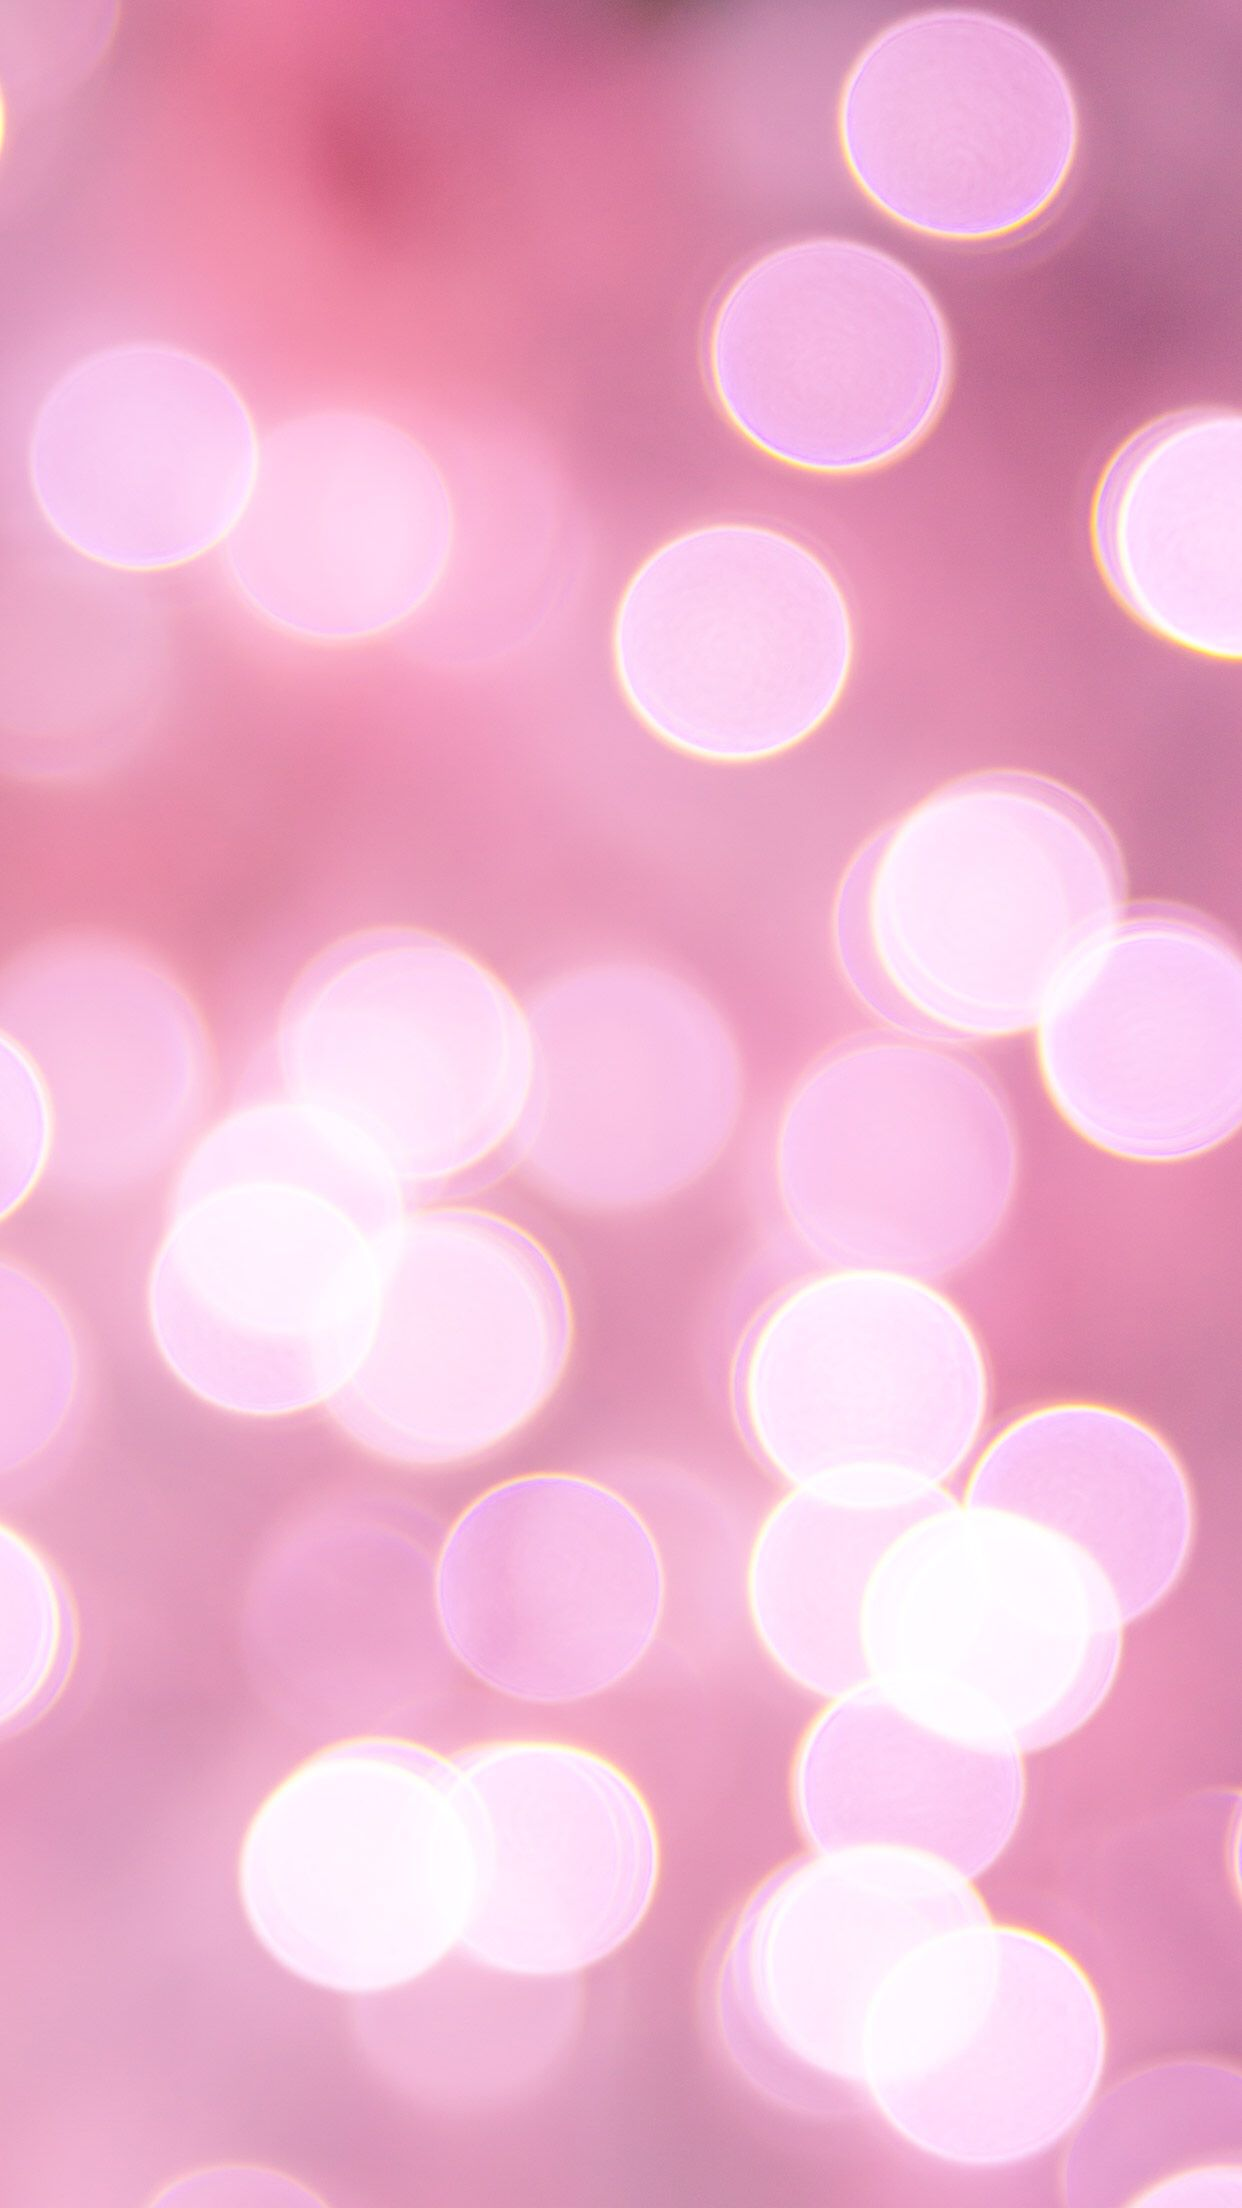 I Just Customized My Lock Screen Using This App This App Has Amazing Collection Of Pink Wallpapers Pink Wallpaper Iphone Background Wallpaper Bokeh Wallpaper